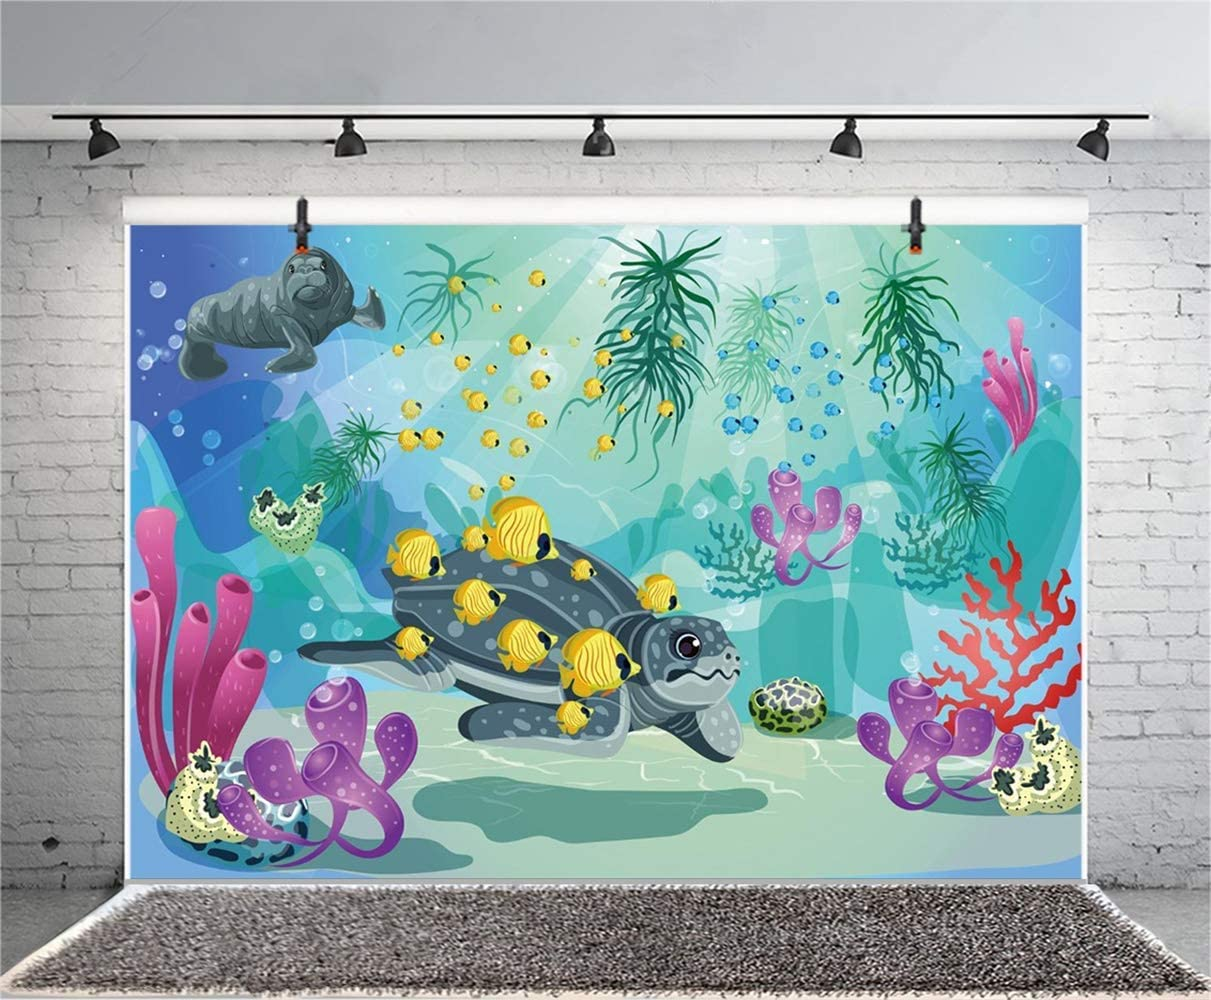 8x6.5ft Cartoon Underwater World Polyester Photography Background Light Beams Turtle Fishes Sea Dogs Coral Plants Backdrop Child Kids Baby Birthday Party Banner Safari Party Wallpaper Studio